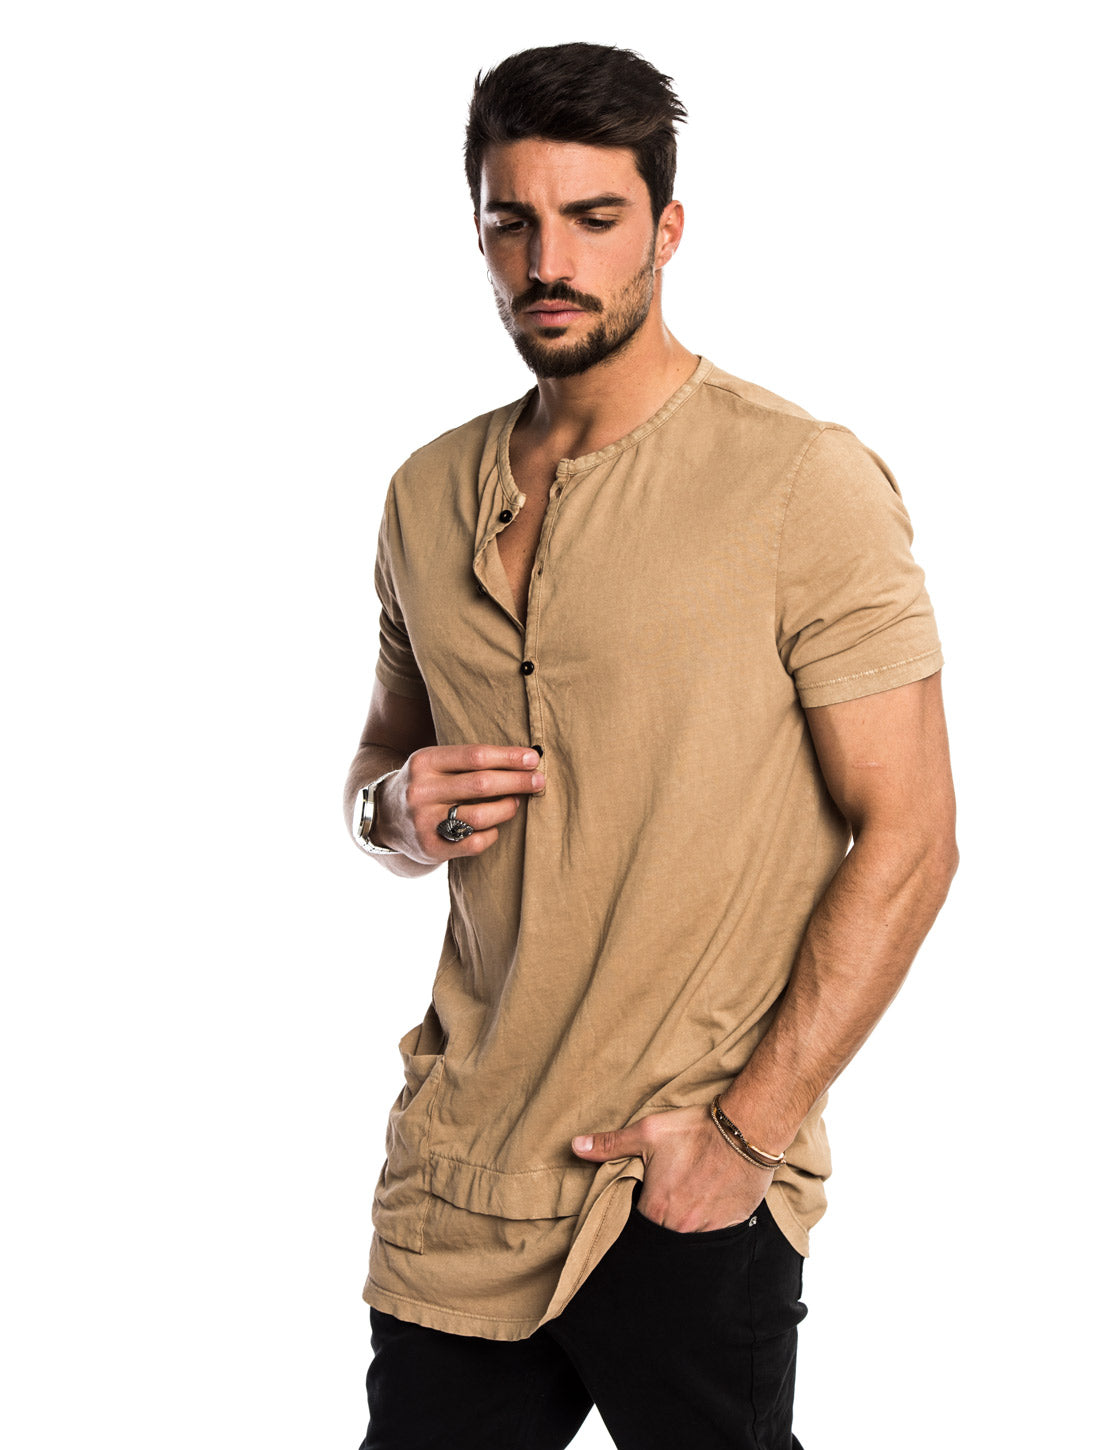 ANDY OVERSIZED T-SHIRT IN SAND